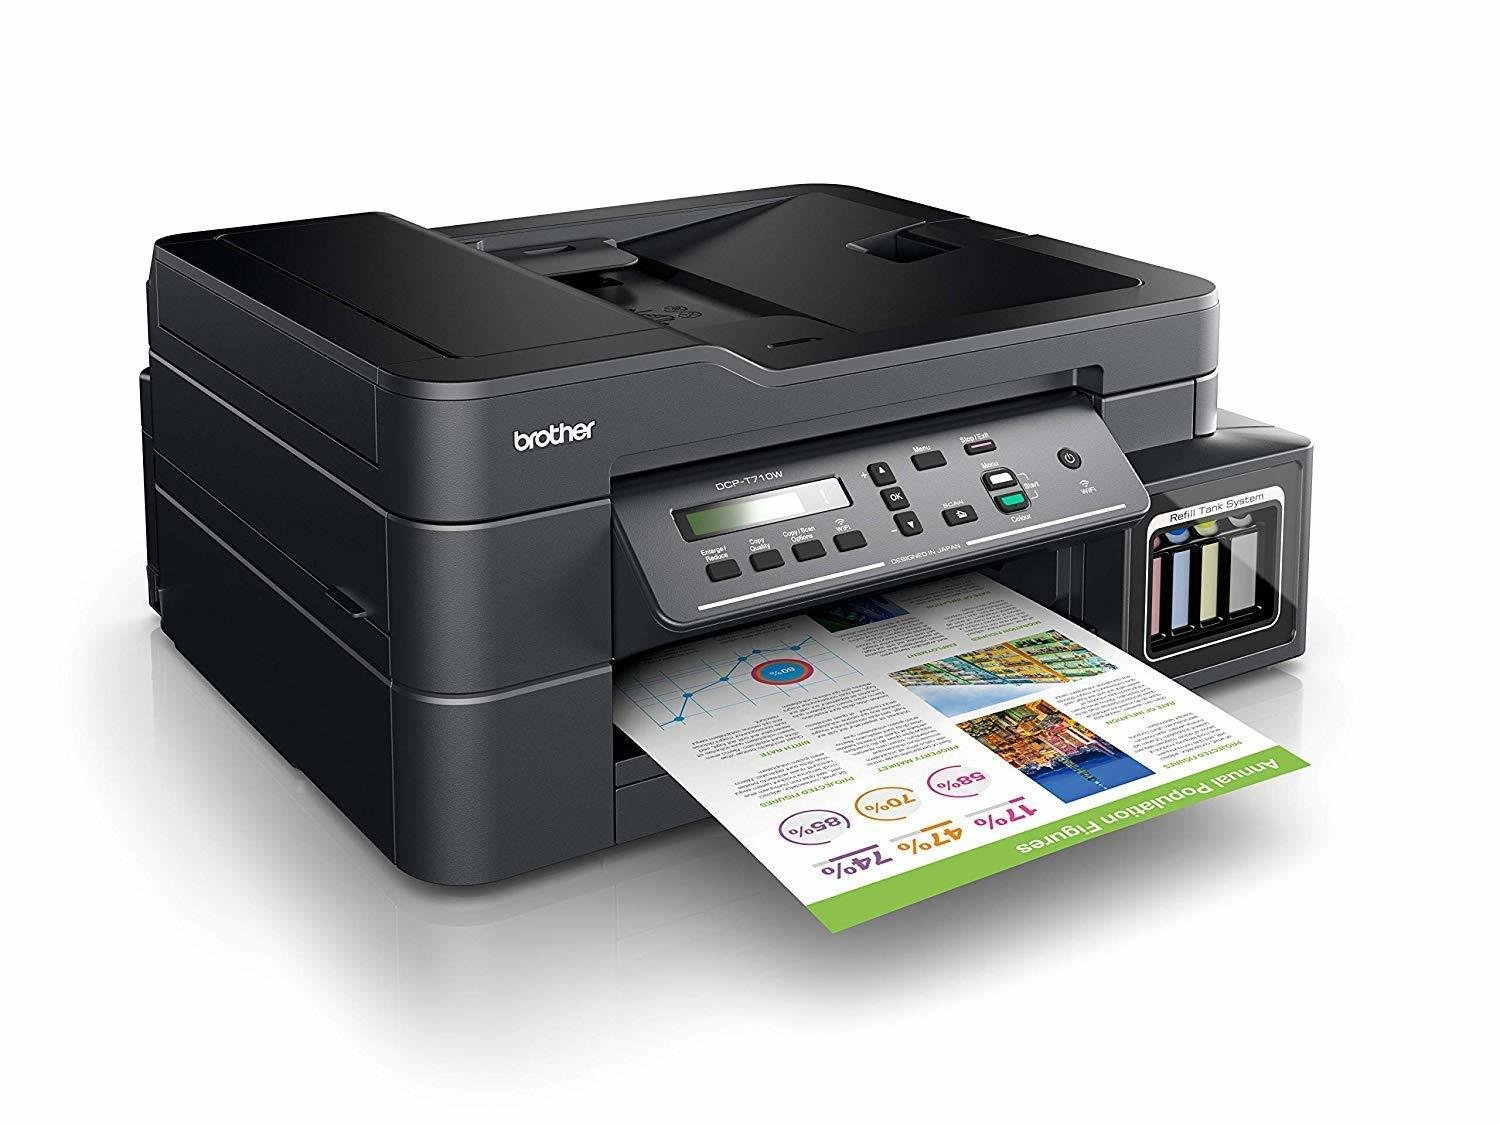 Brother DCP-T710W Ink Tank Refill System Printer, Rs 11872